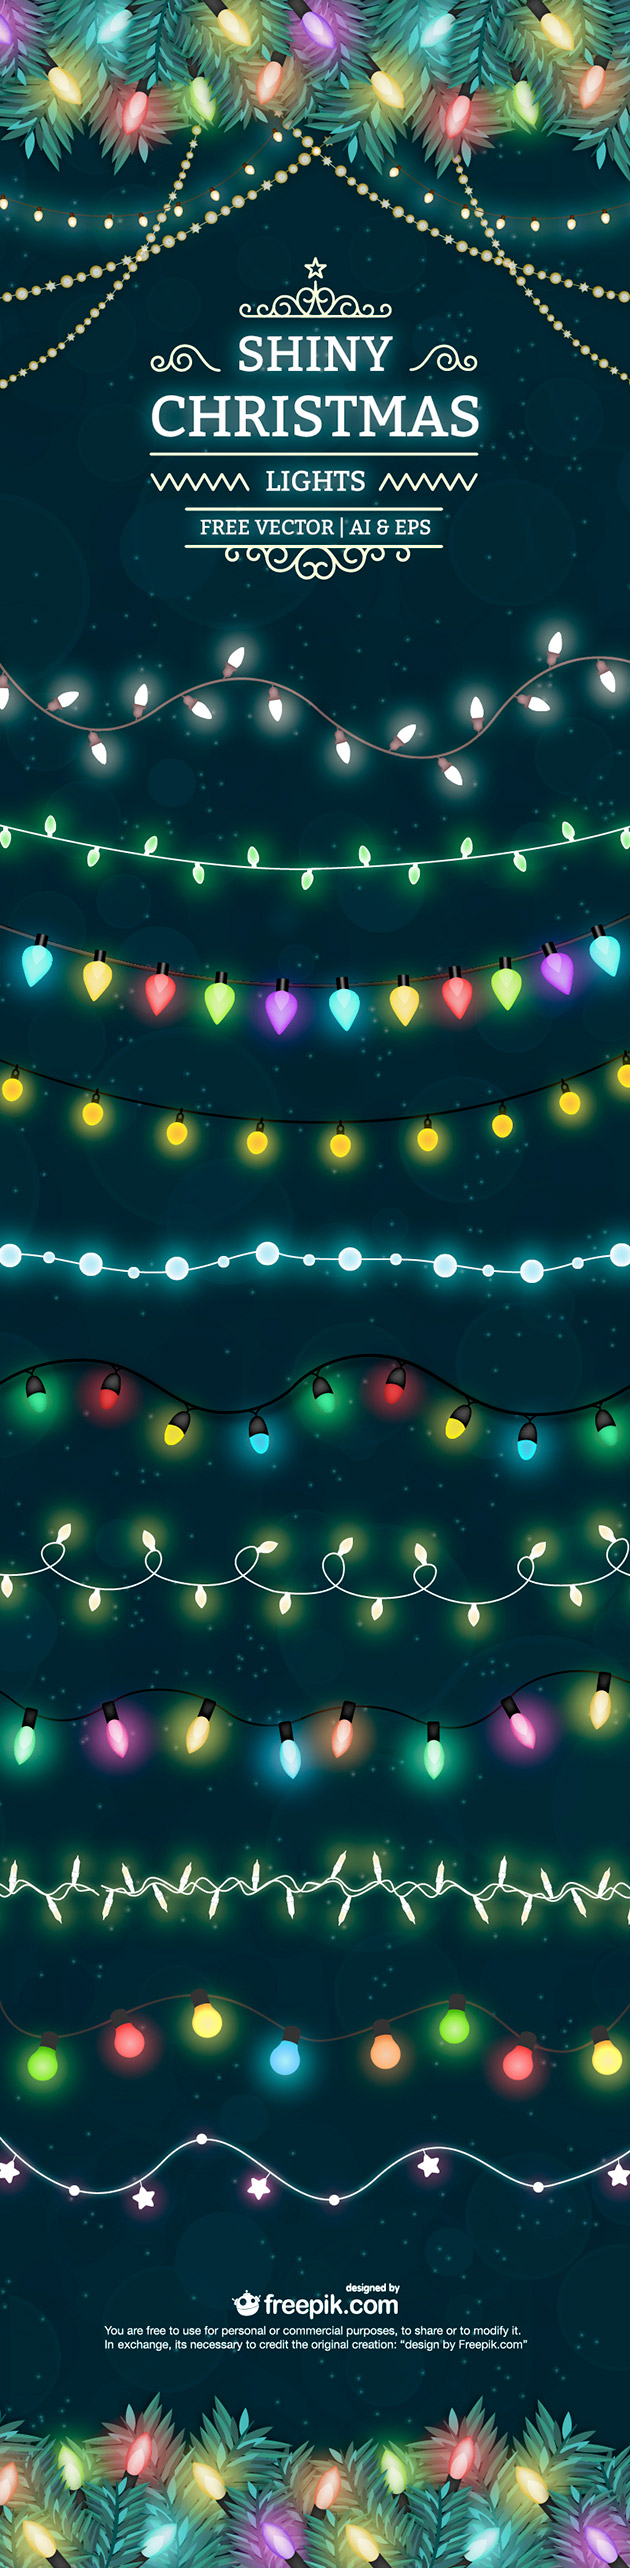 Cover ChristmasLights 013 Shiny Christmas light free vector set